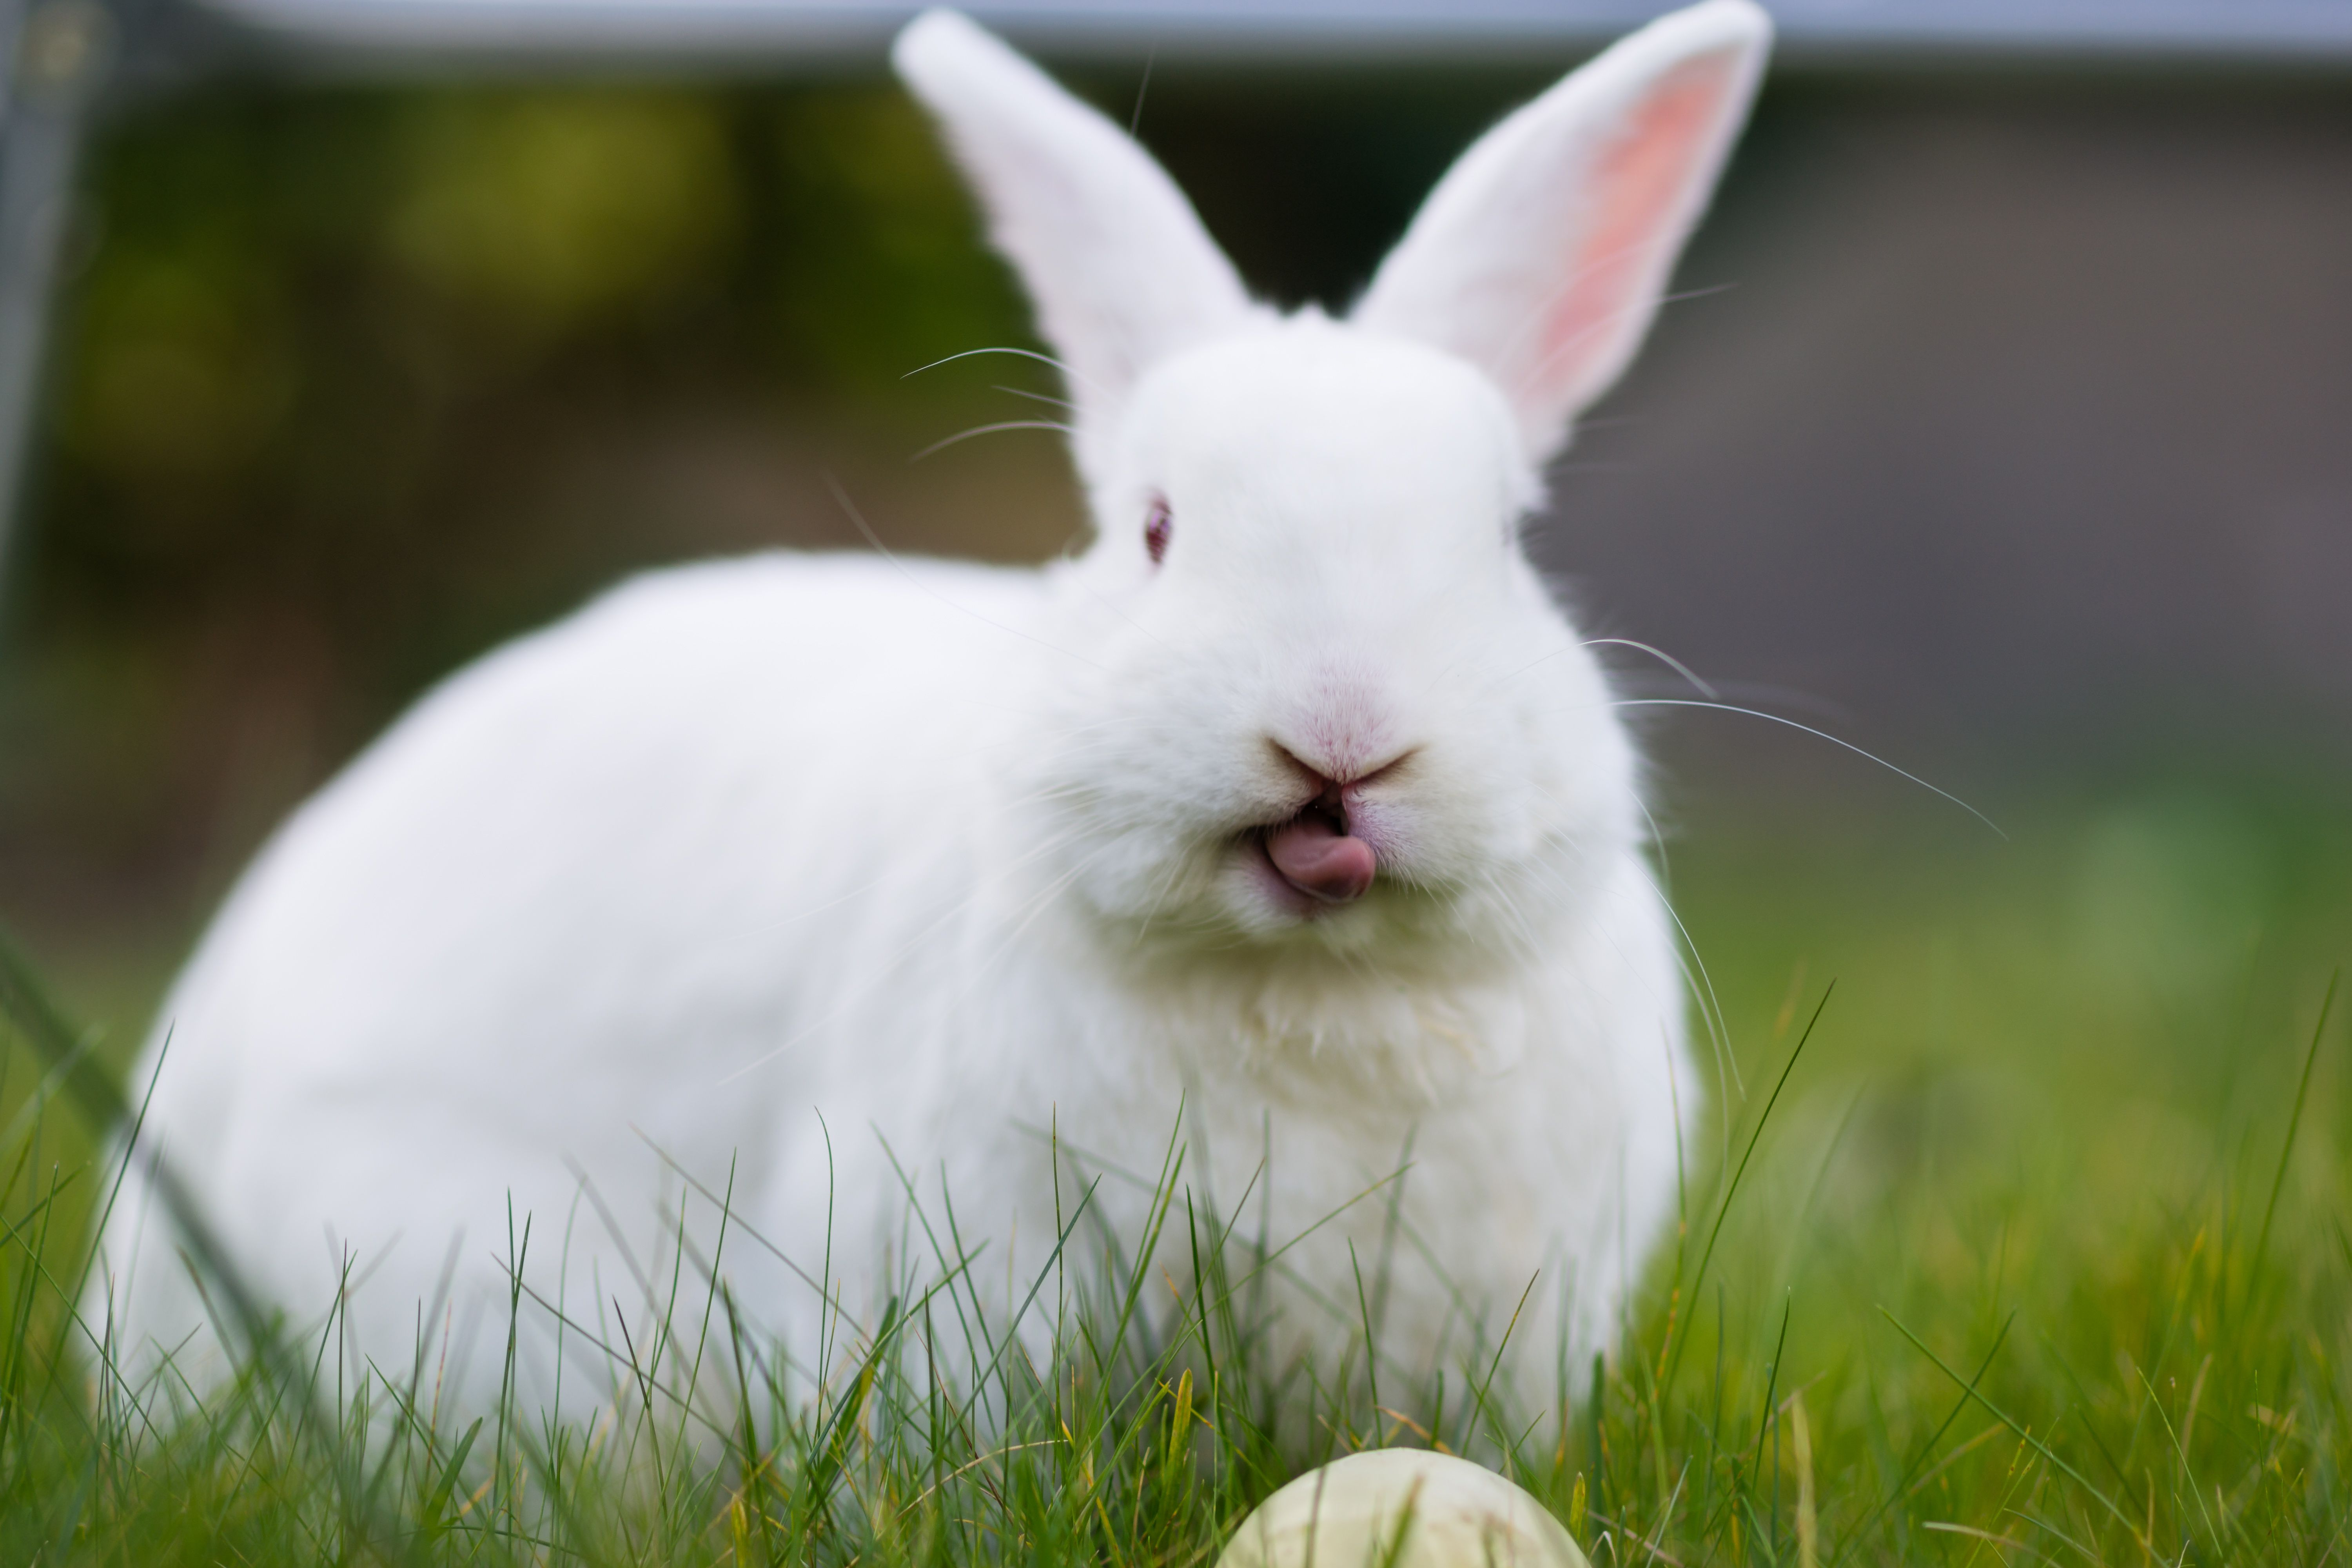 Rabbit sticking it's tongue out